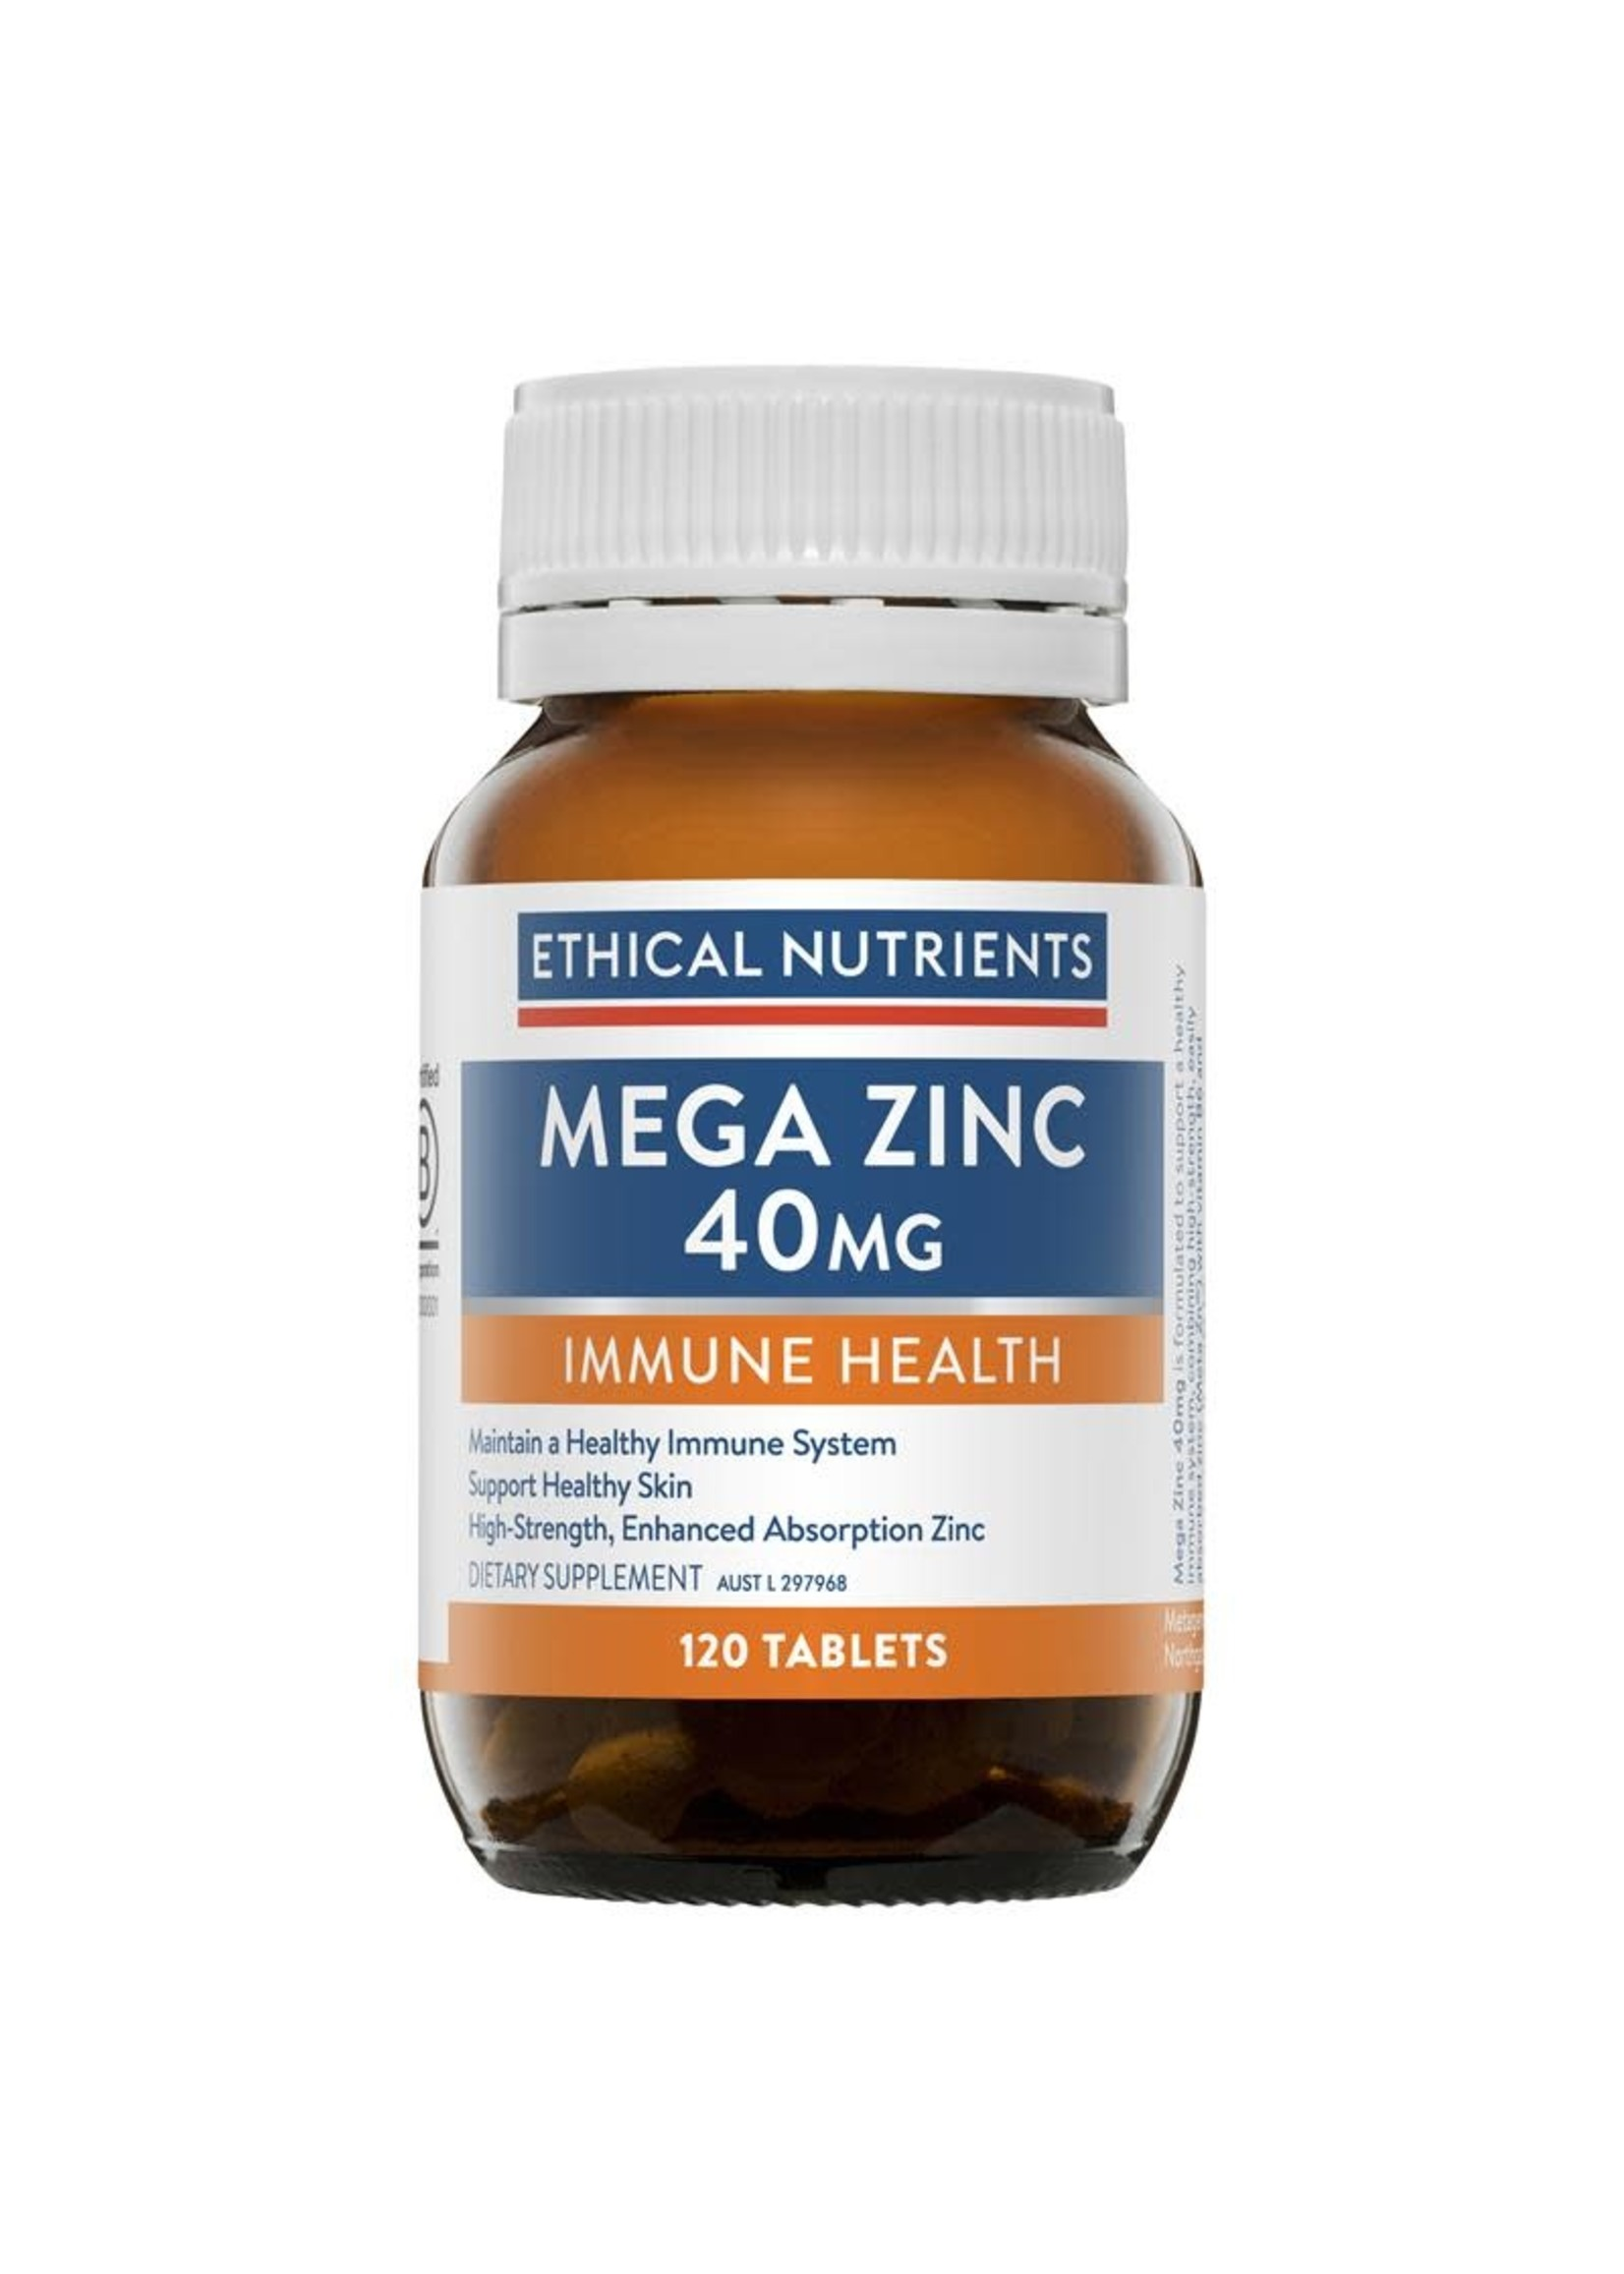 ETHICAL NUTRIENTS Ethical Nutrients Mega Zinc 40mg 120 tabs